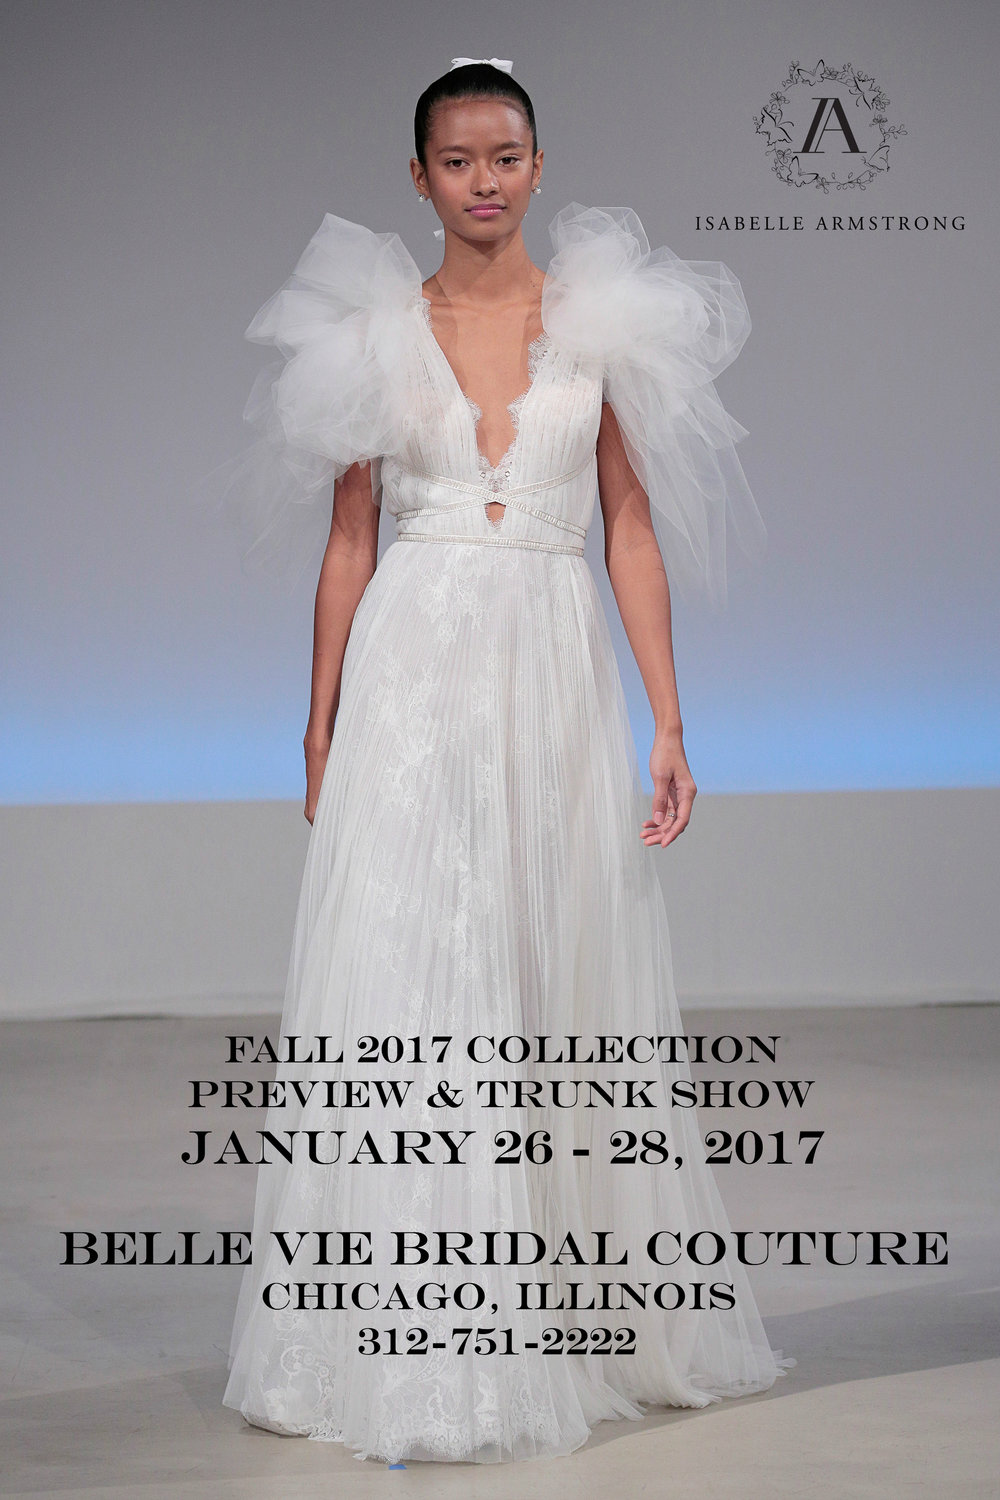 Bridal shows in illinois - Trunk Show Belle Vie Bridal Couture Chicago Illinois